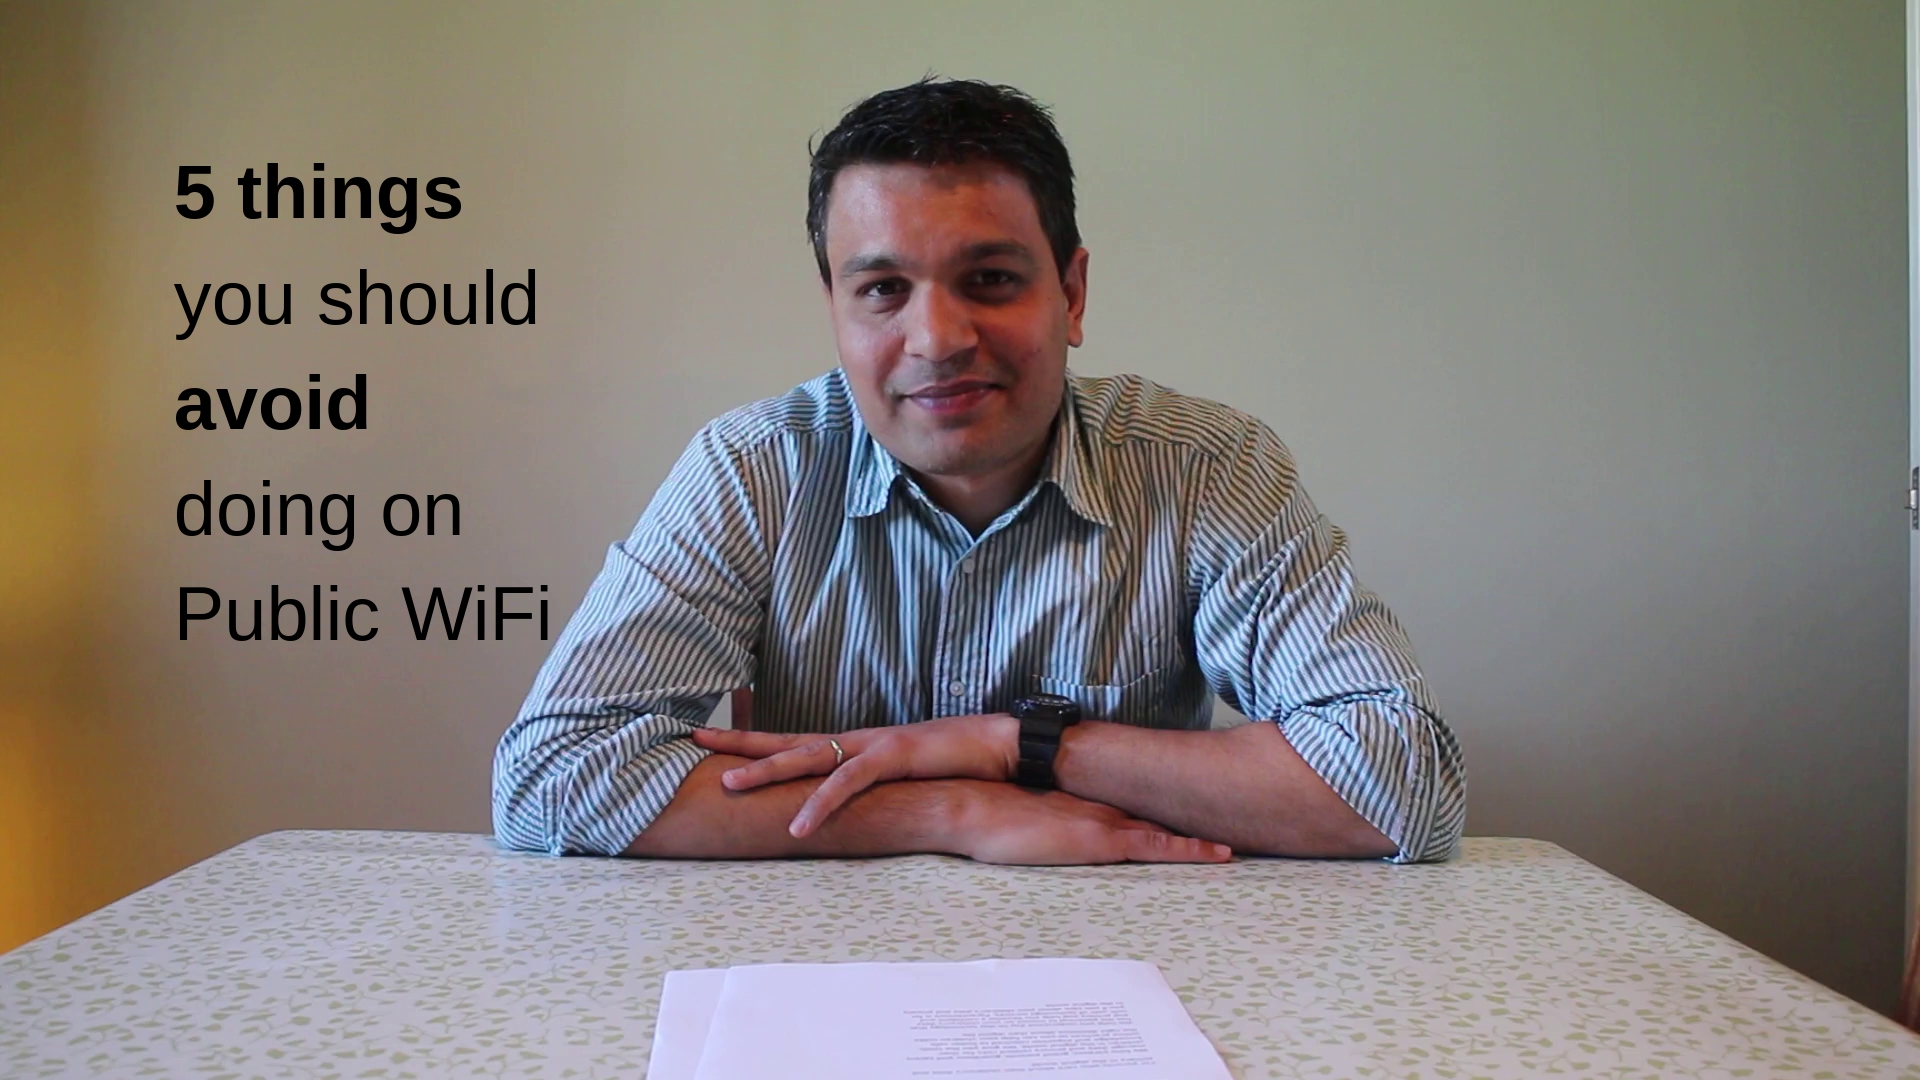 5-things-to-you-should-avoid-doing-on-Public-WiFi